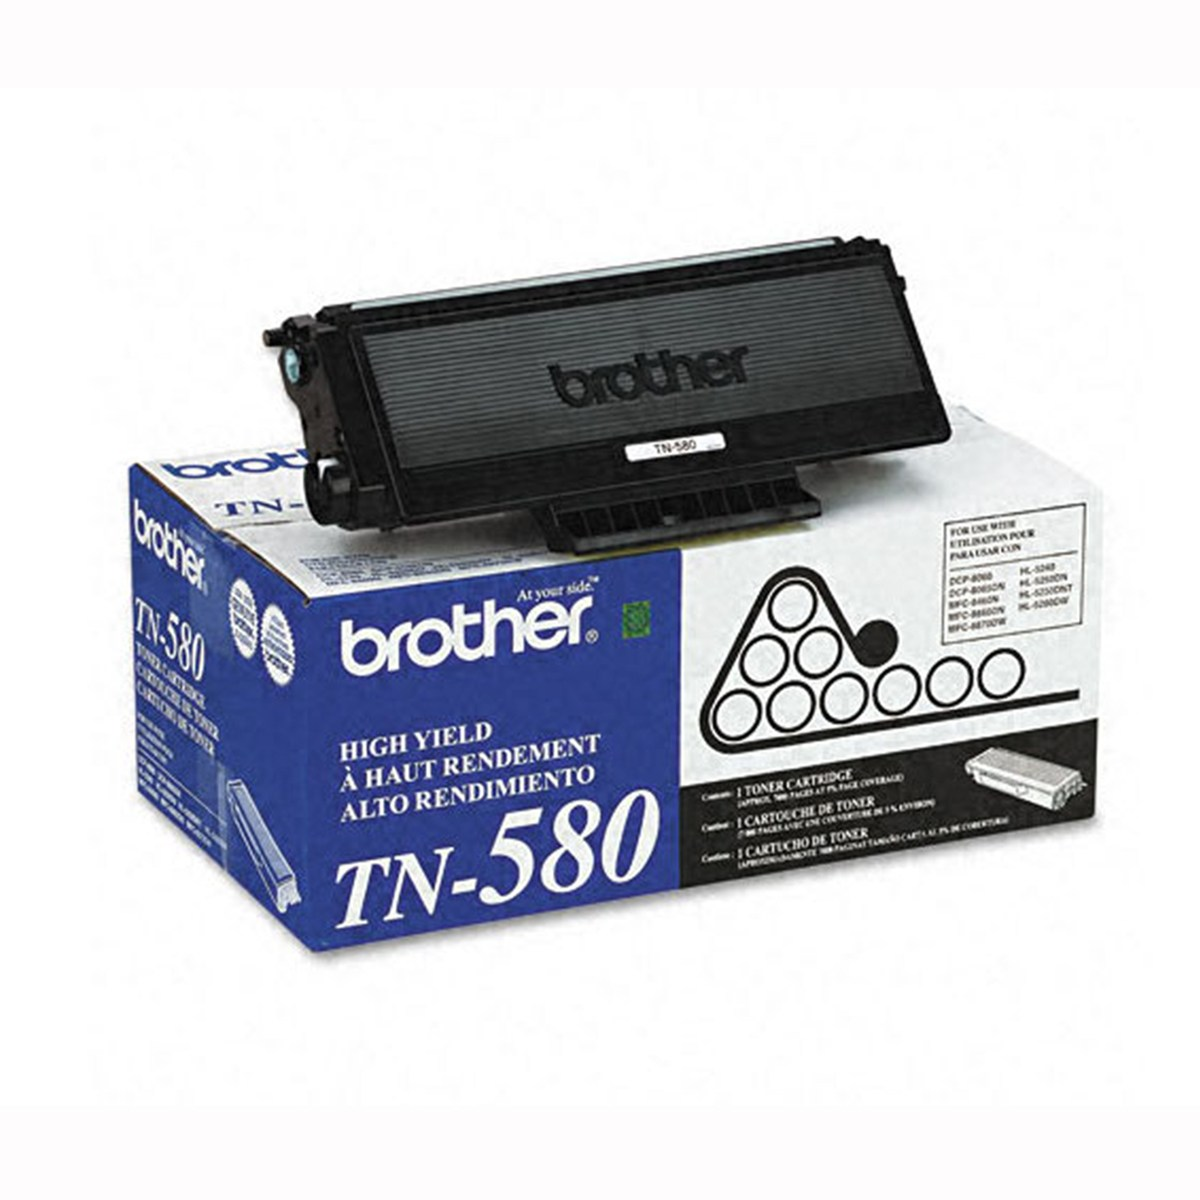 Toner Compatível Brother TN580 | HL5240 HL5250DN DCP8065DN MFC8460N